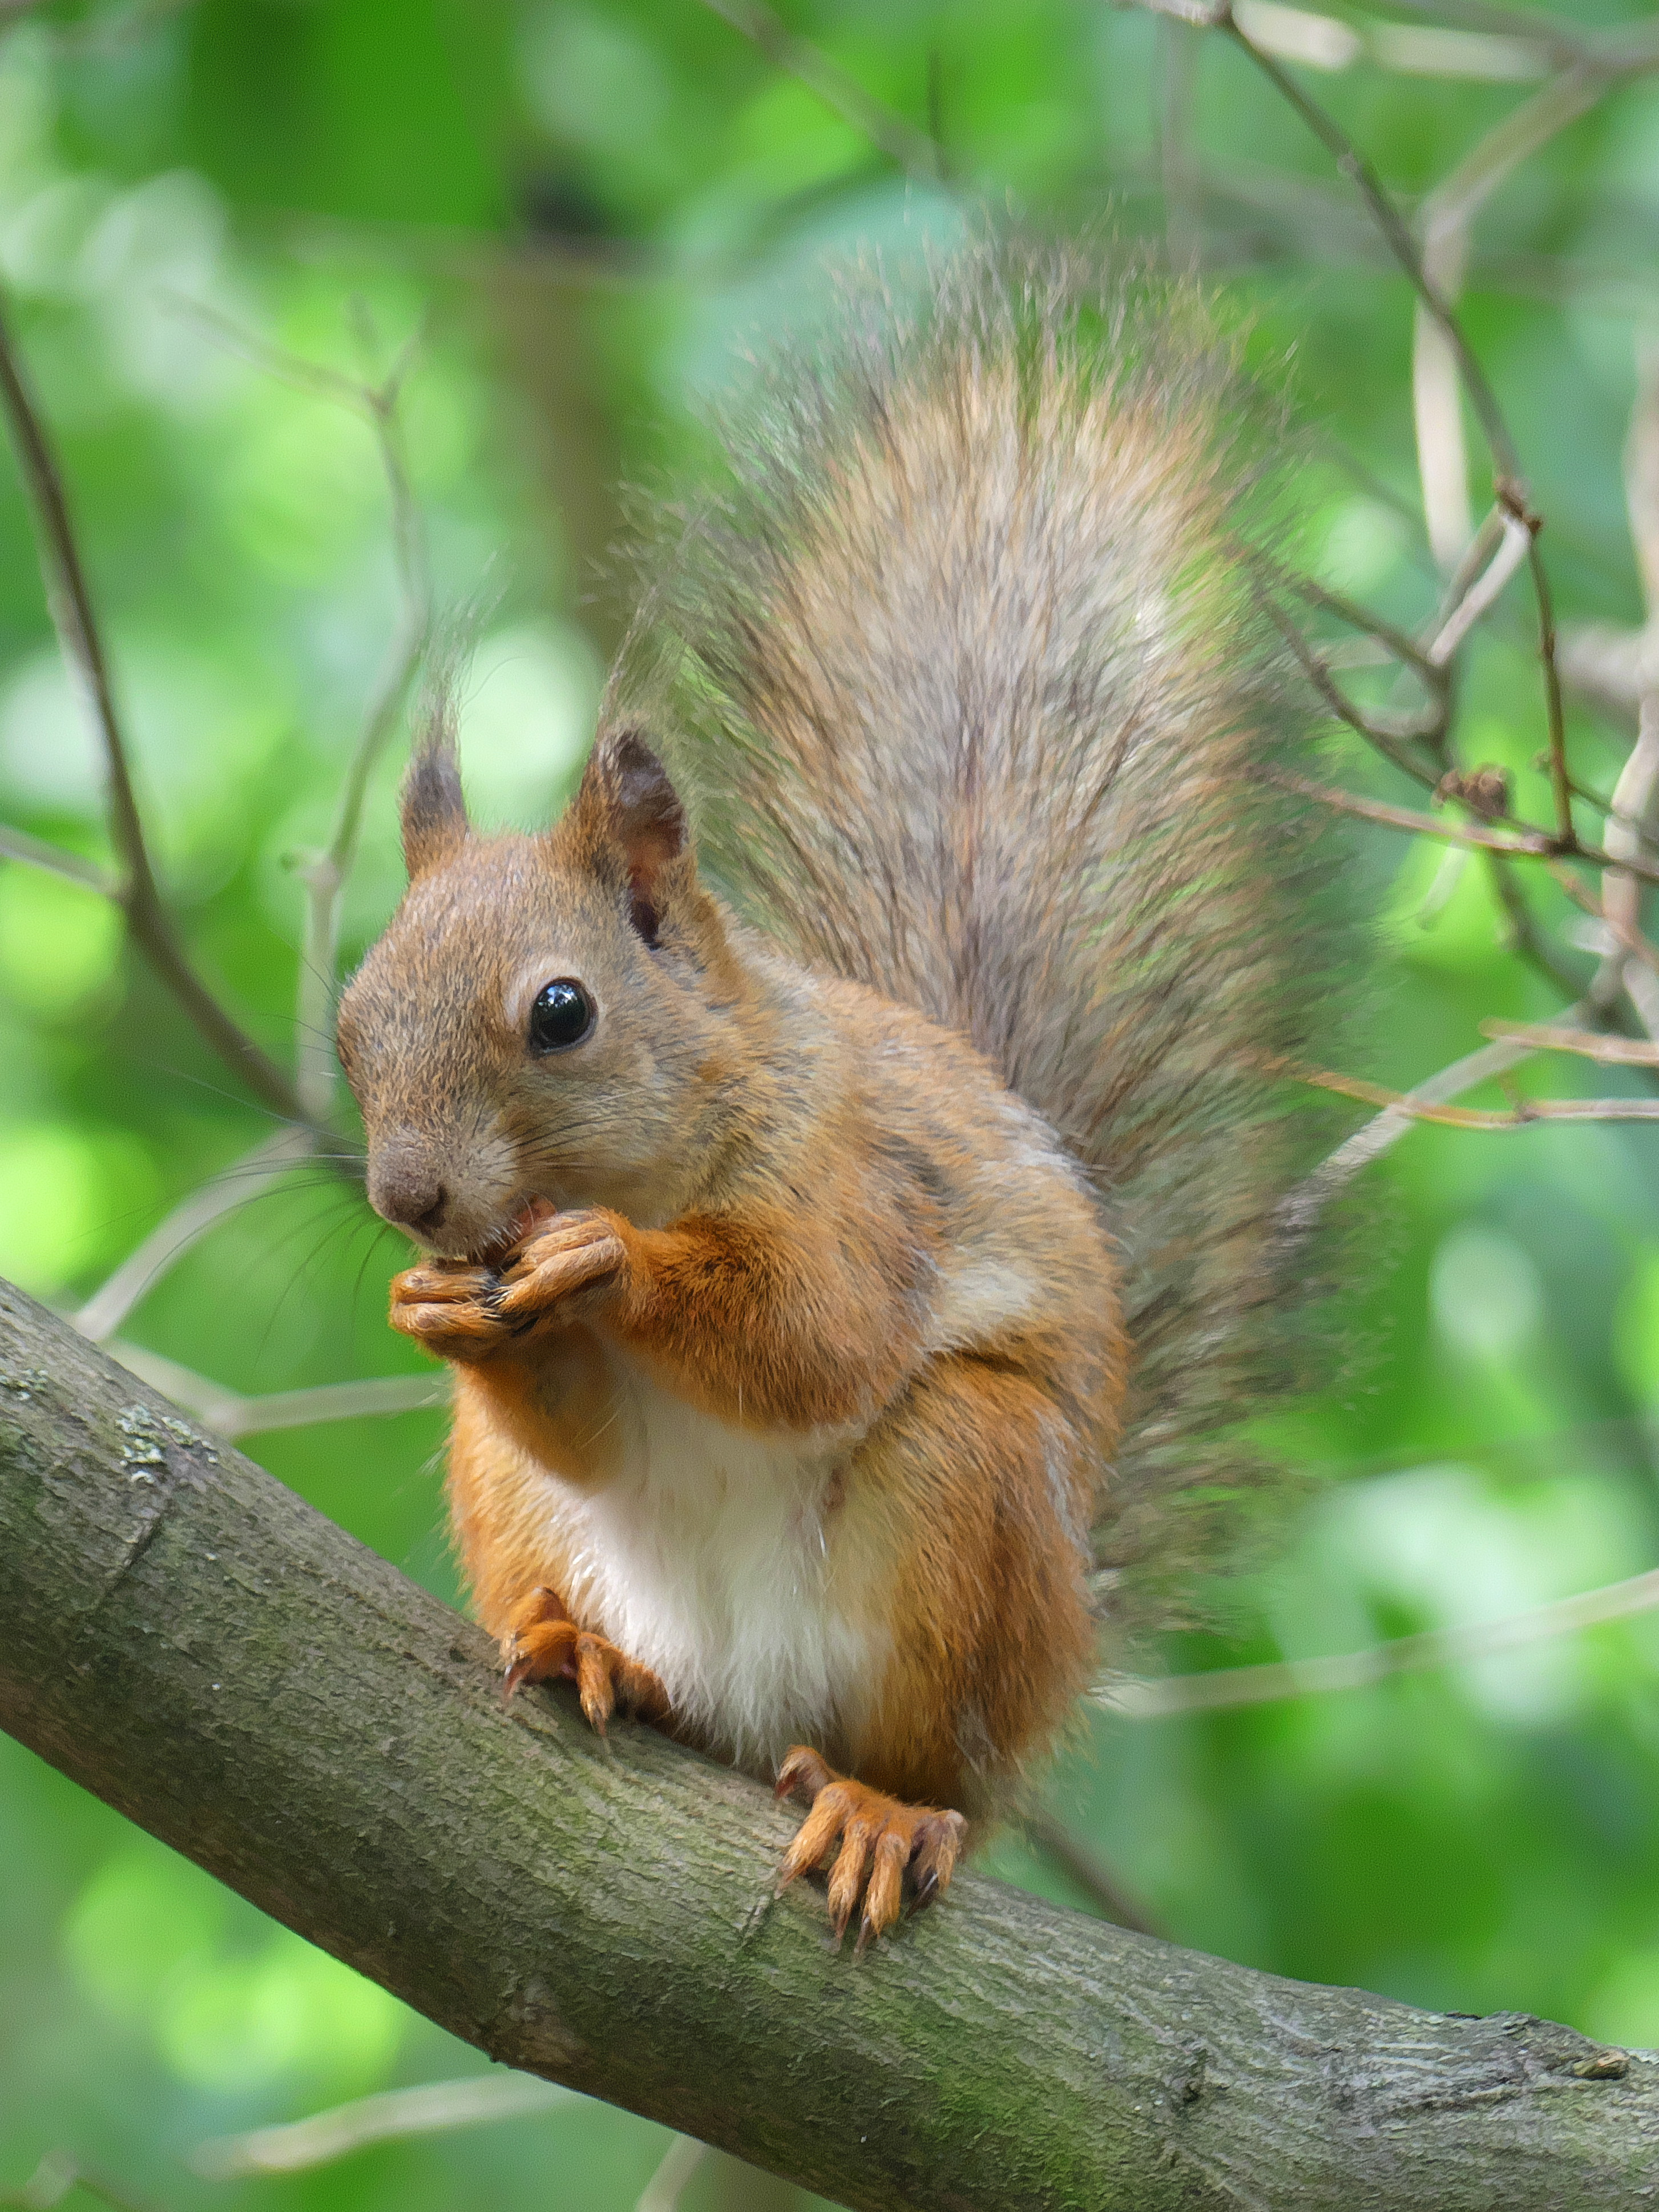 81292 download wallpaper Animals, Squirrel, Rodent, Animal, Wood, Tree, Fluffy screensavers and pictures for free